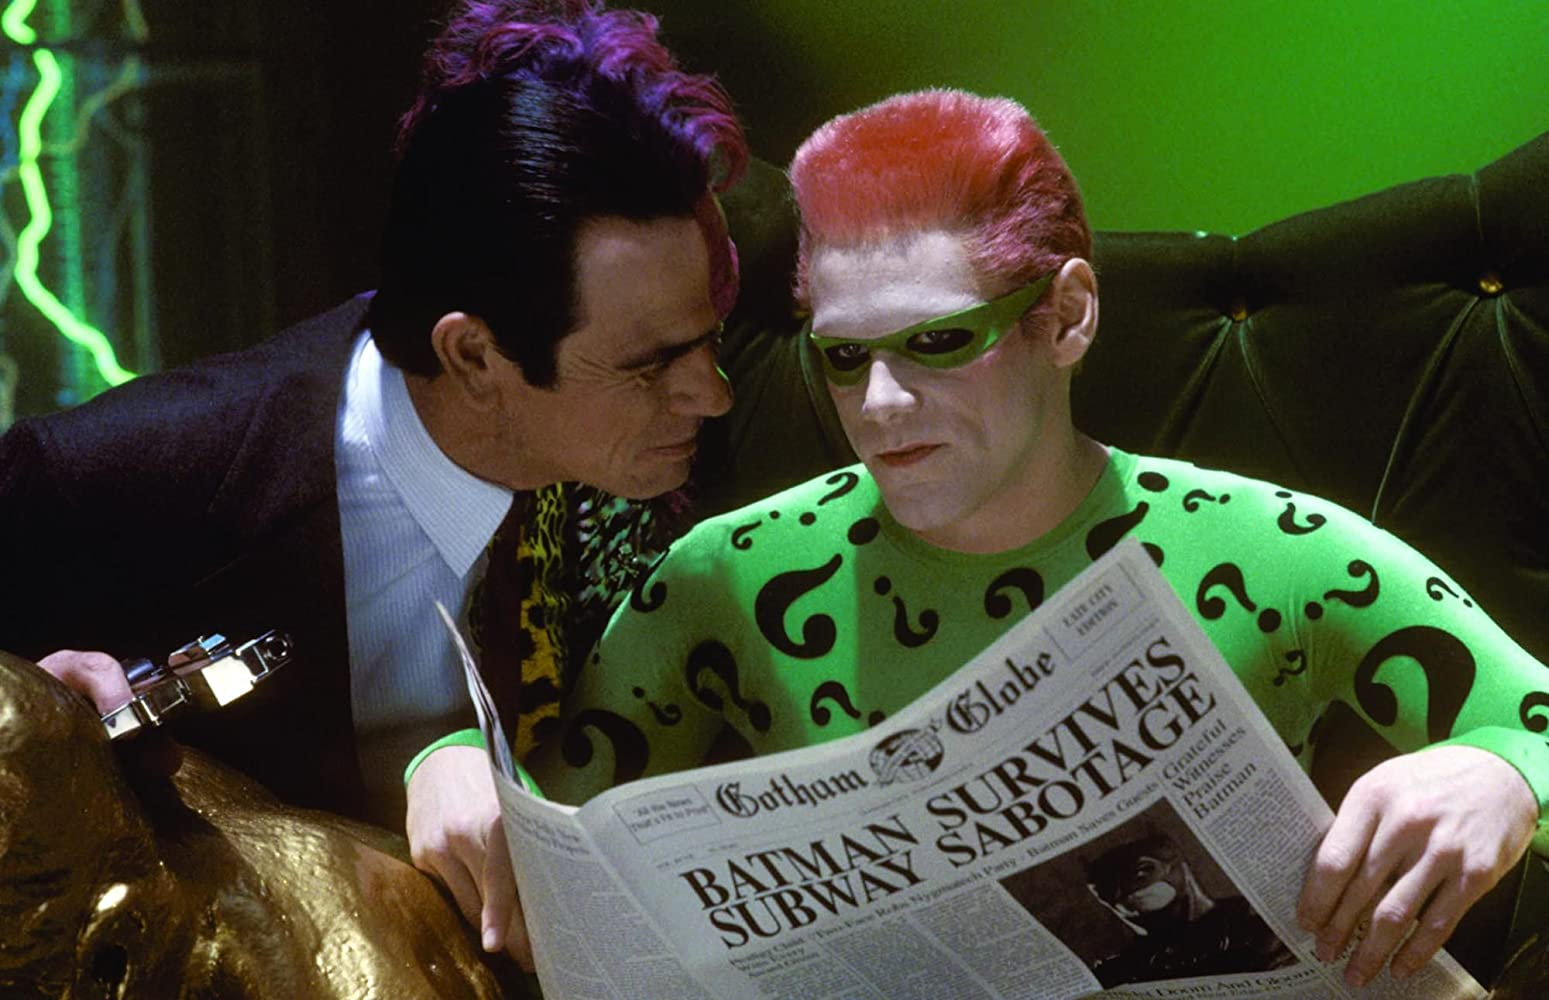 Jim Carrey and Tommy Lee Jones in Batman Forever (1995)